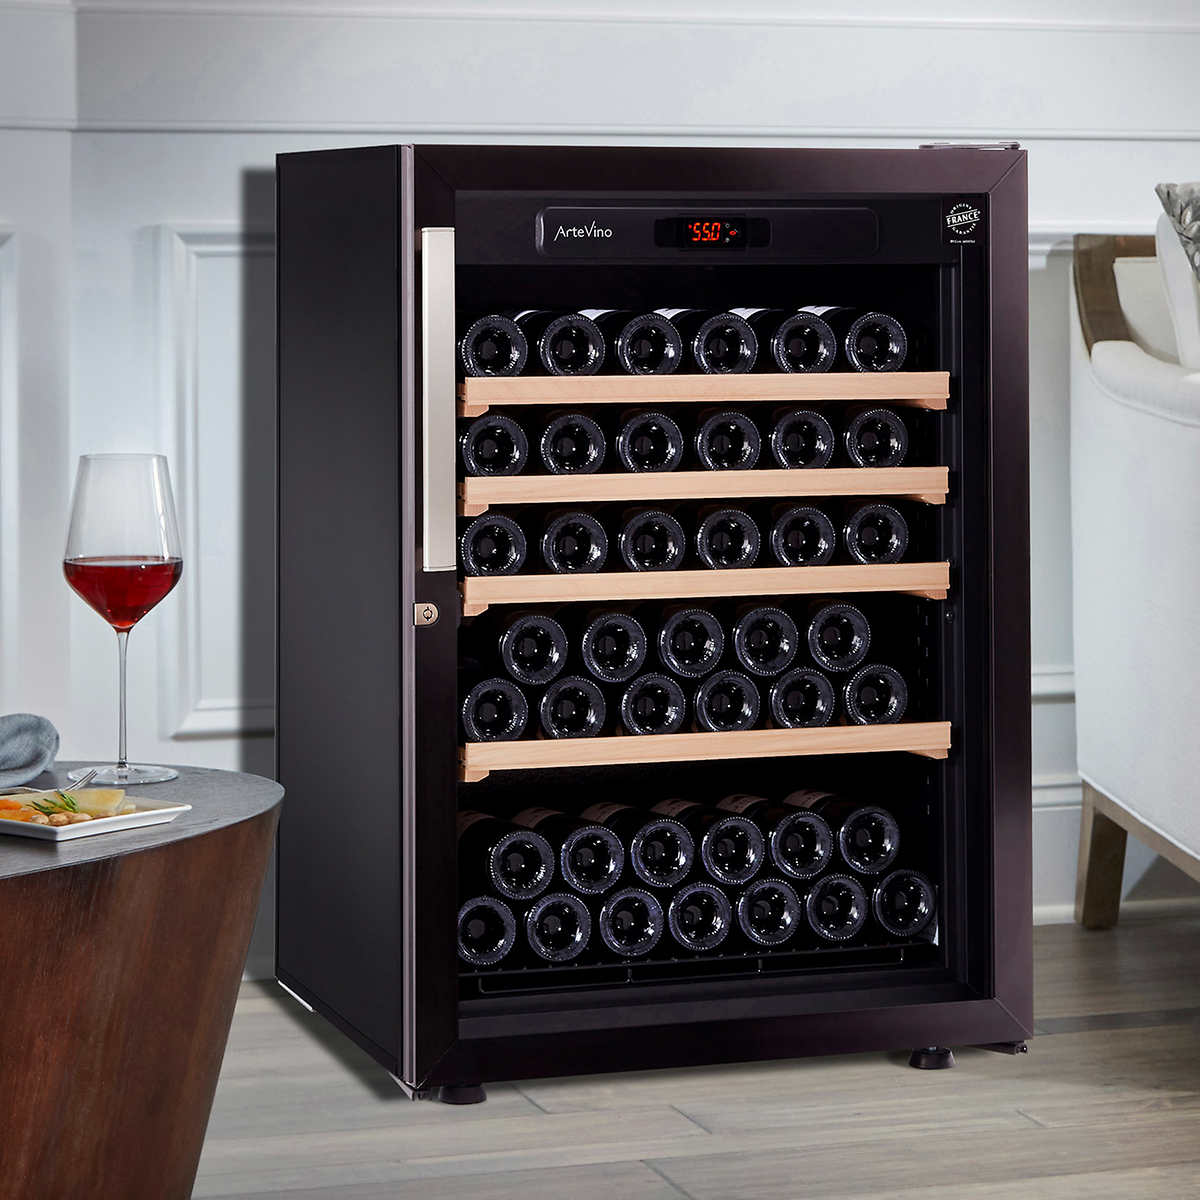 Artevino Iii S By Eurocave 90 Bottle Free Standing Wine Cellar